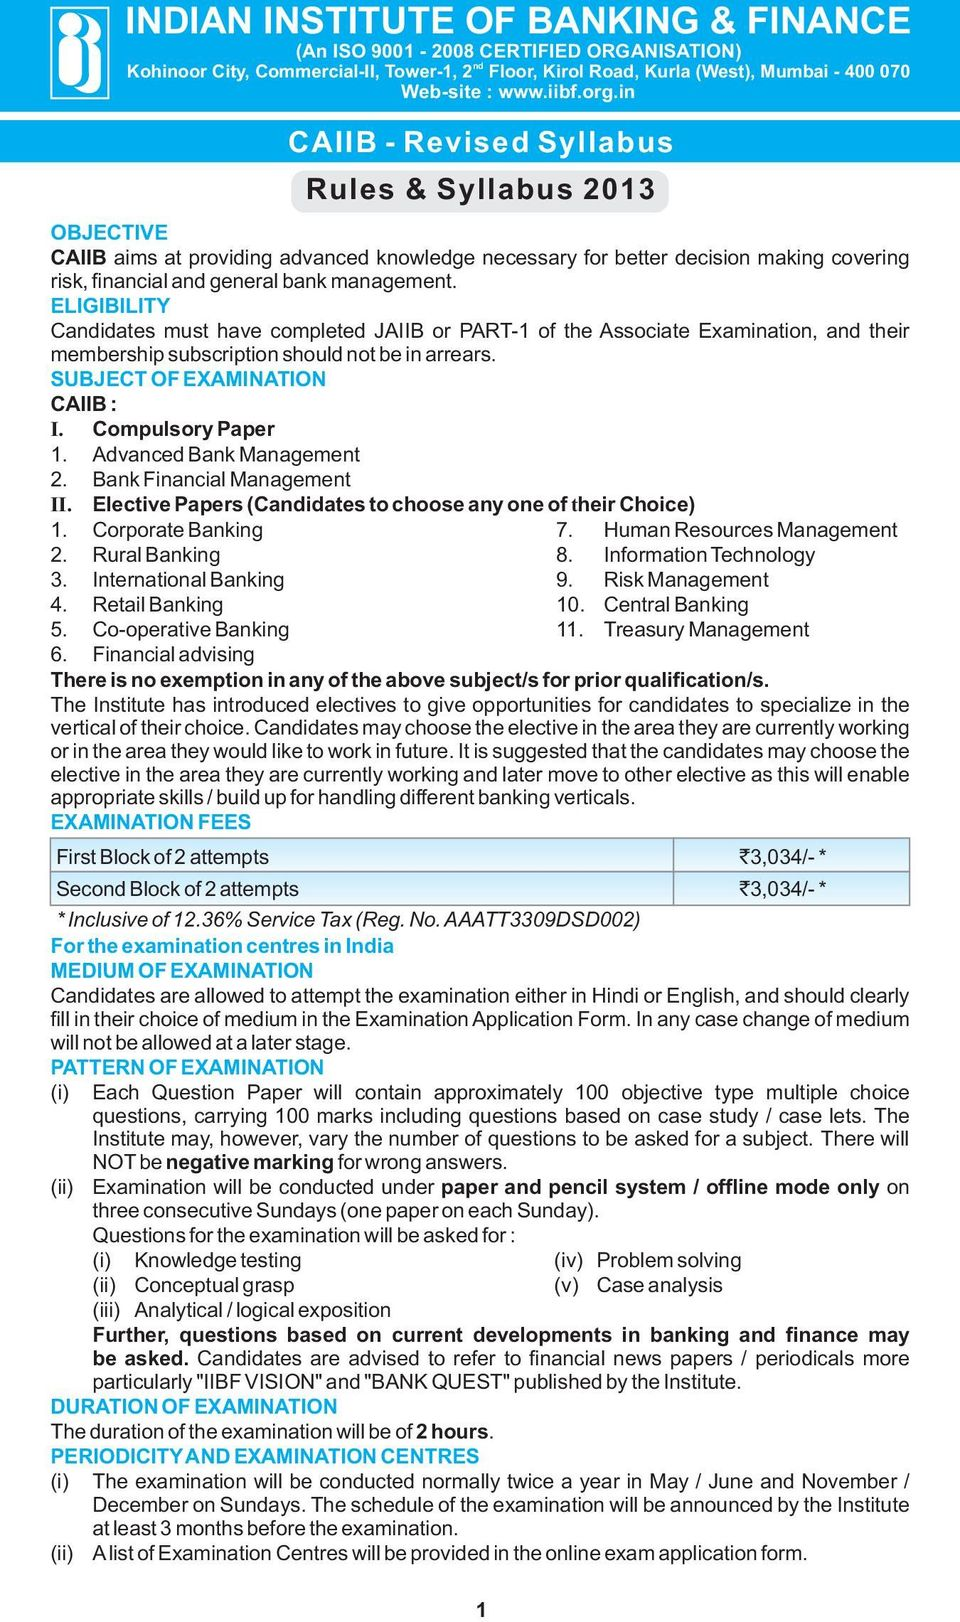 INDIAN INSTITUTE OF BANKING & FINANCE - PDF